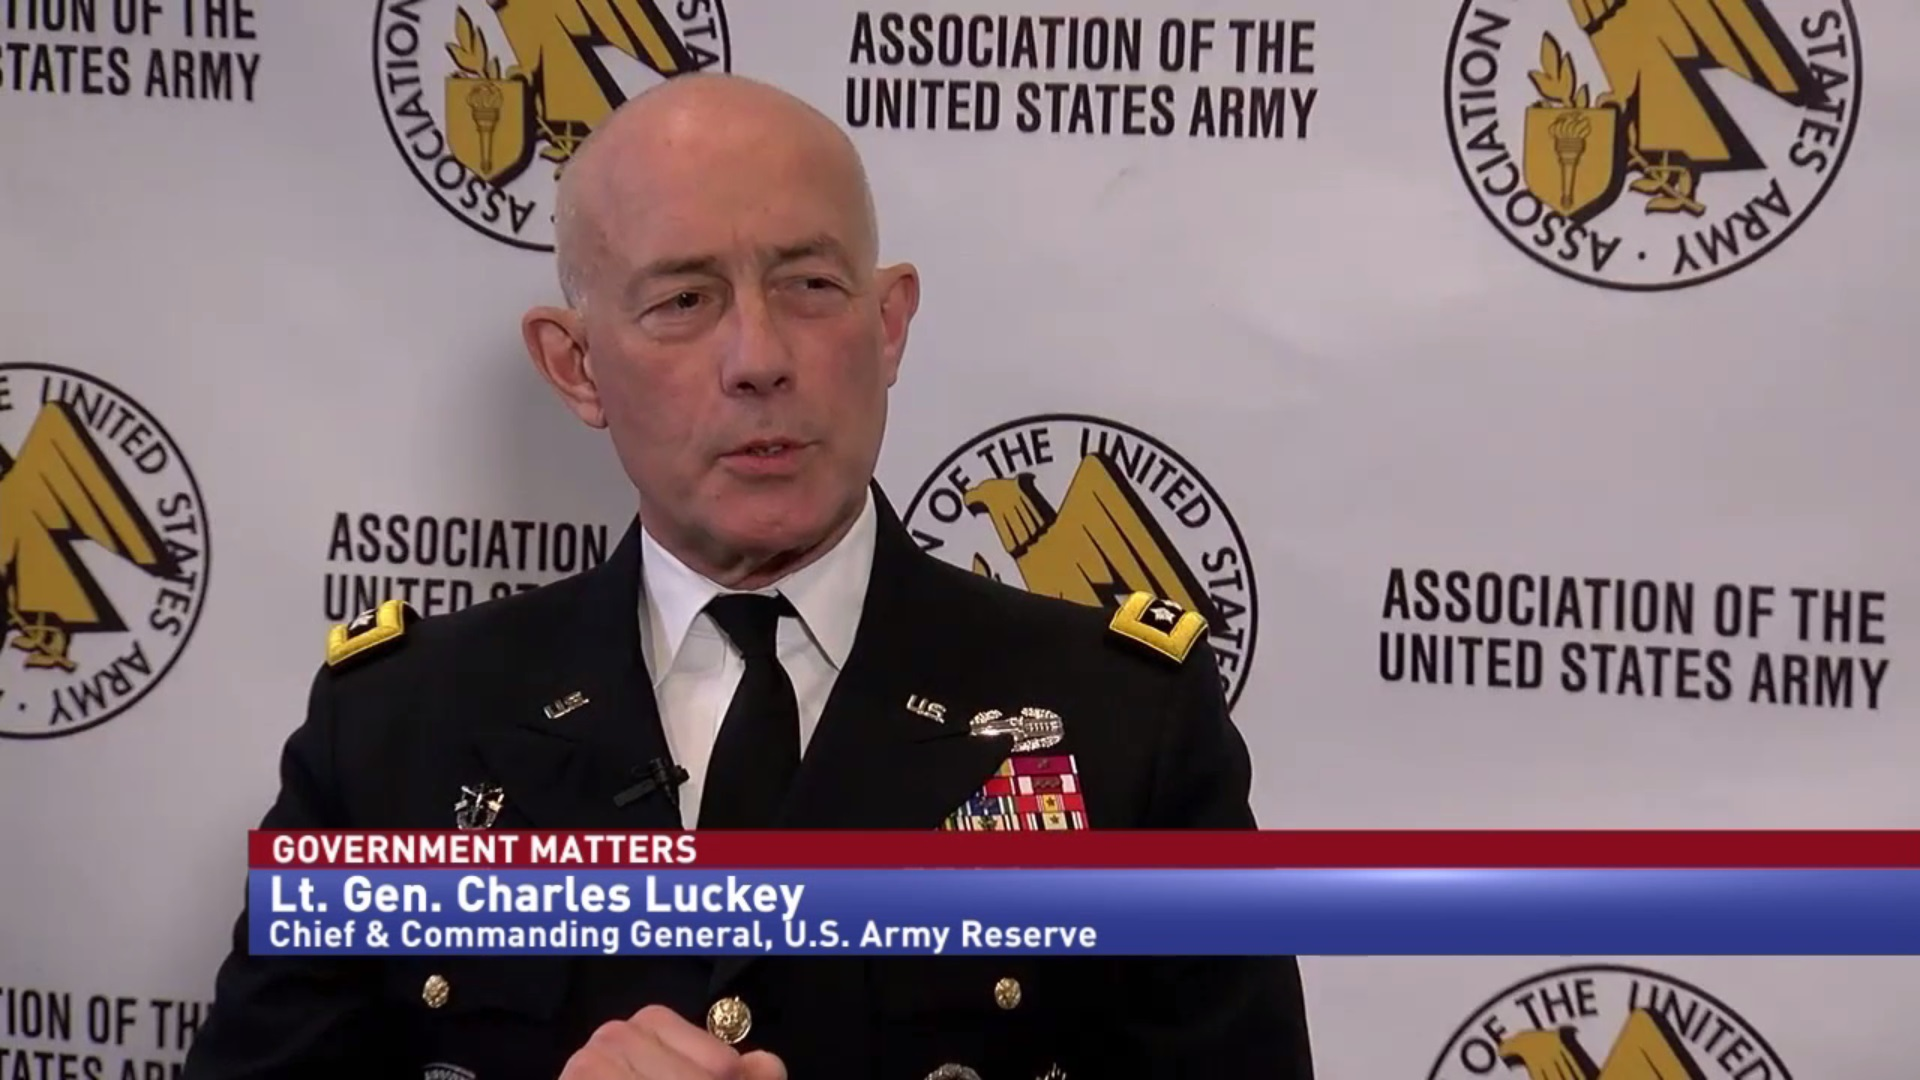 Evolution of the role of the U.S. Army Reserve